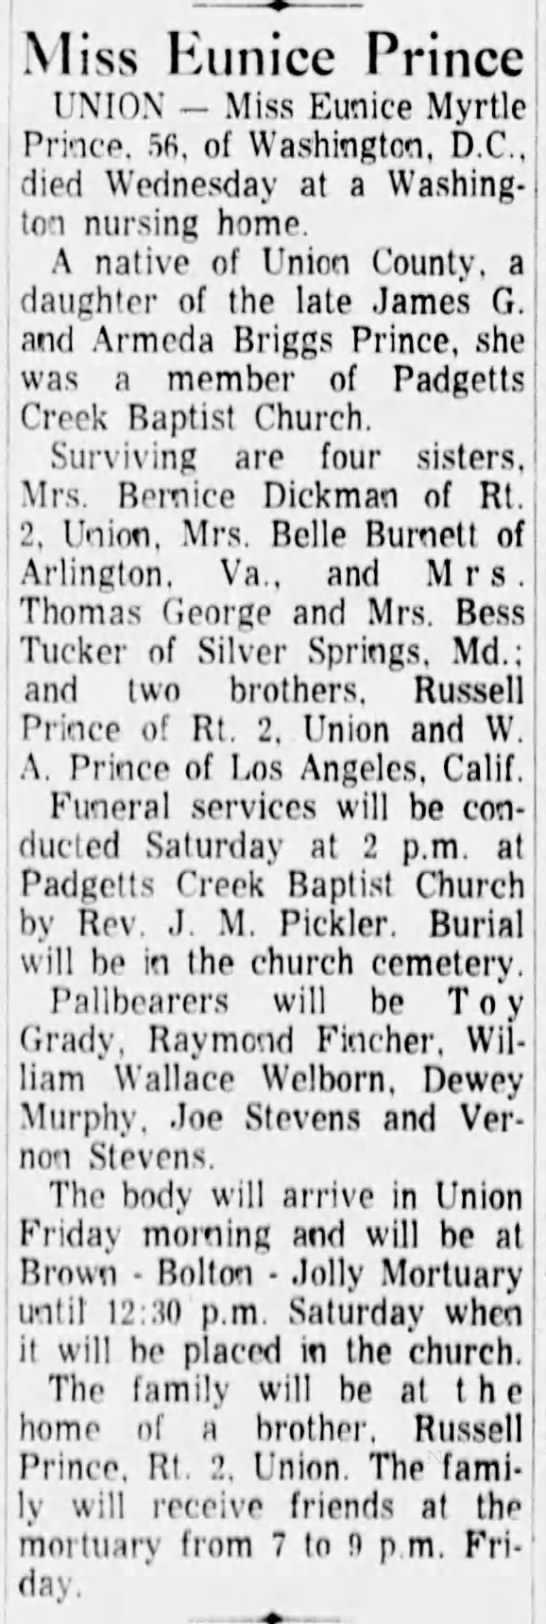 EuniceMyrtlePrinceobitTheGreenvilleNewsGreenvilleSC7 15 1966Pg45 -